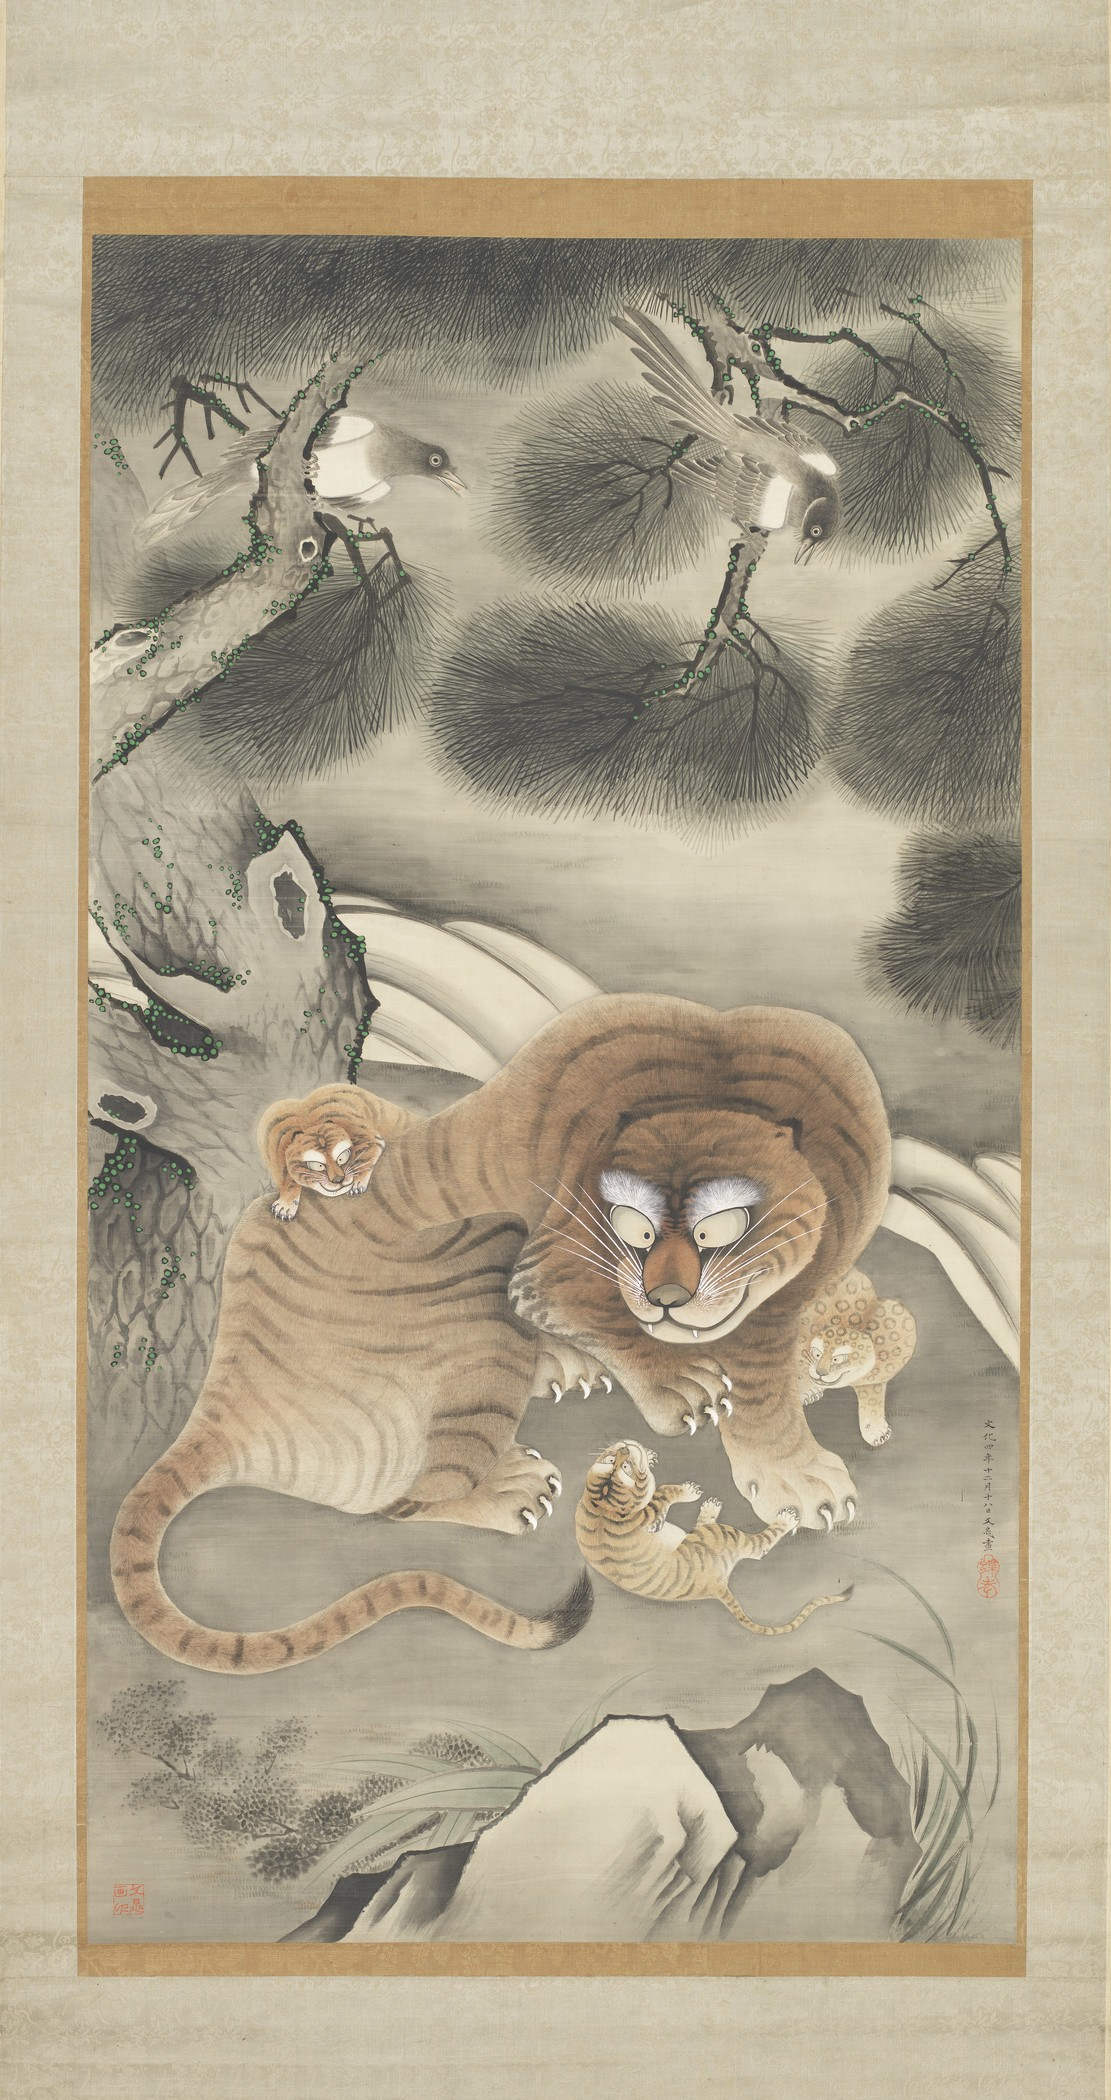 Every Living Thing Animals in Japanese Art